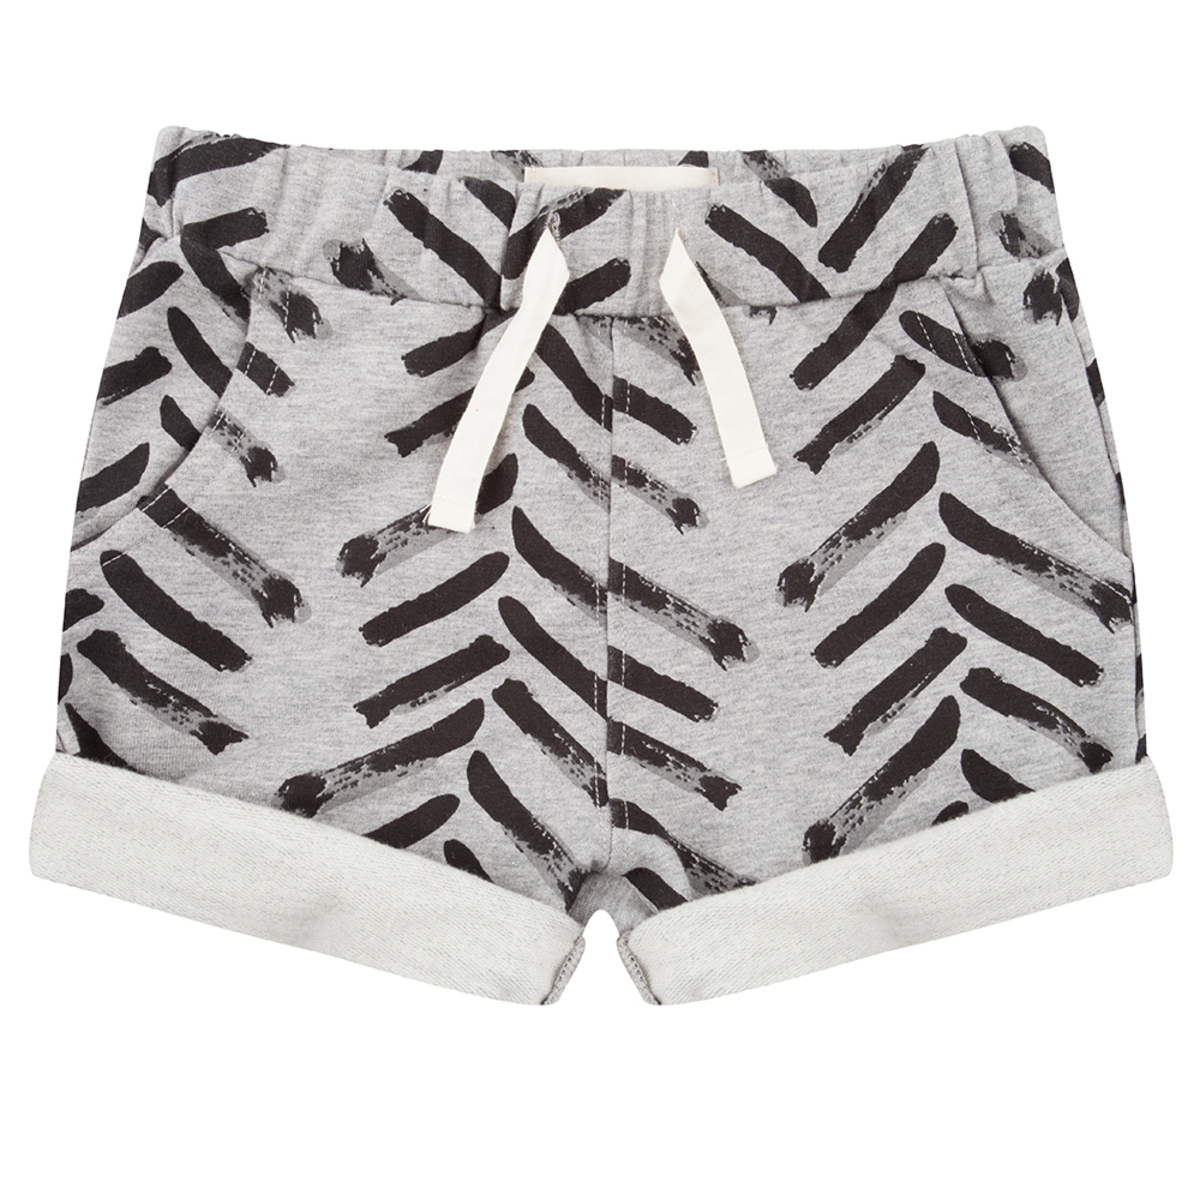 Bas Bébé Short à revers Arrow up gris - 6/9 mois Short à revers Arrow up gris - 6/9 mois